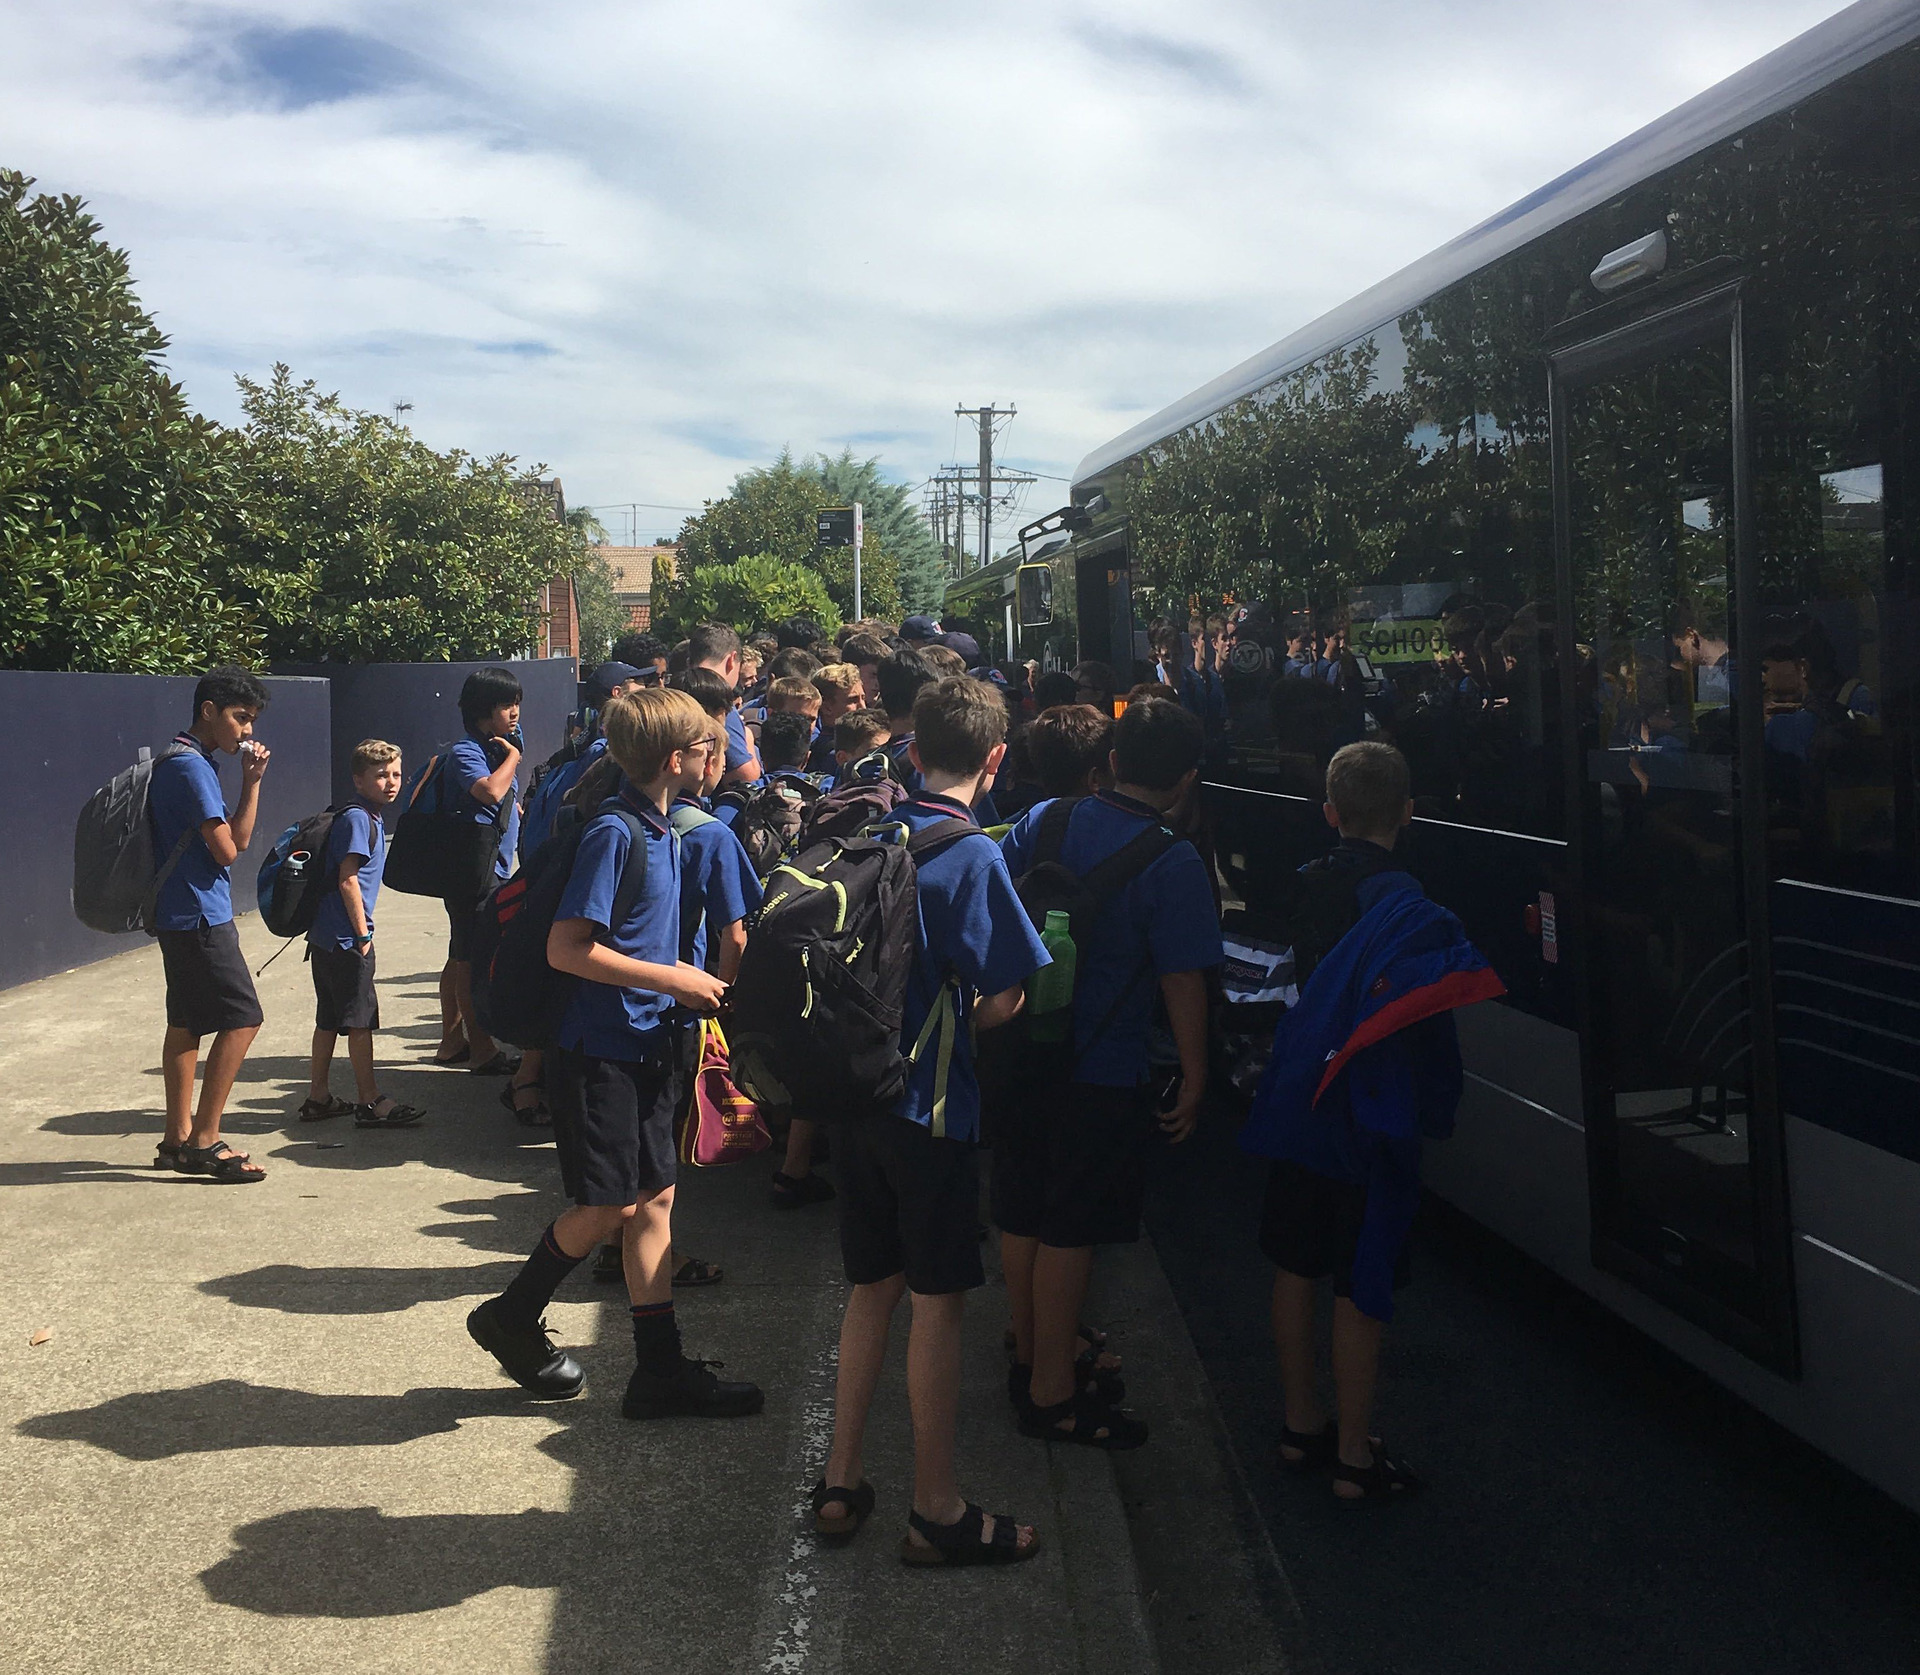 Students sitting on knees, standing in door ways on overcrowded buses on Auckland's North Shore